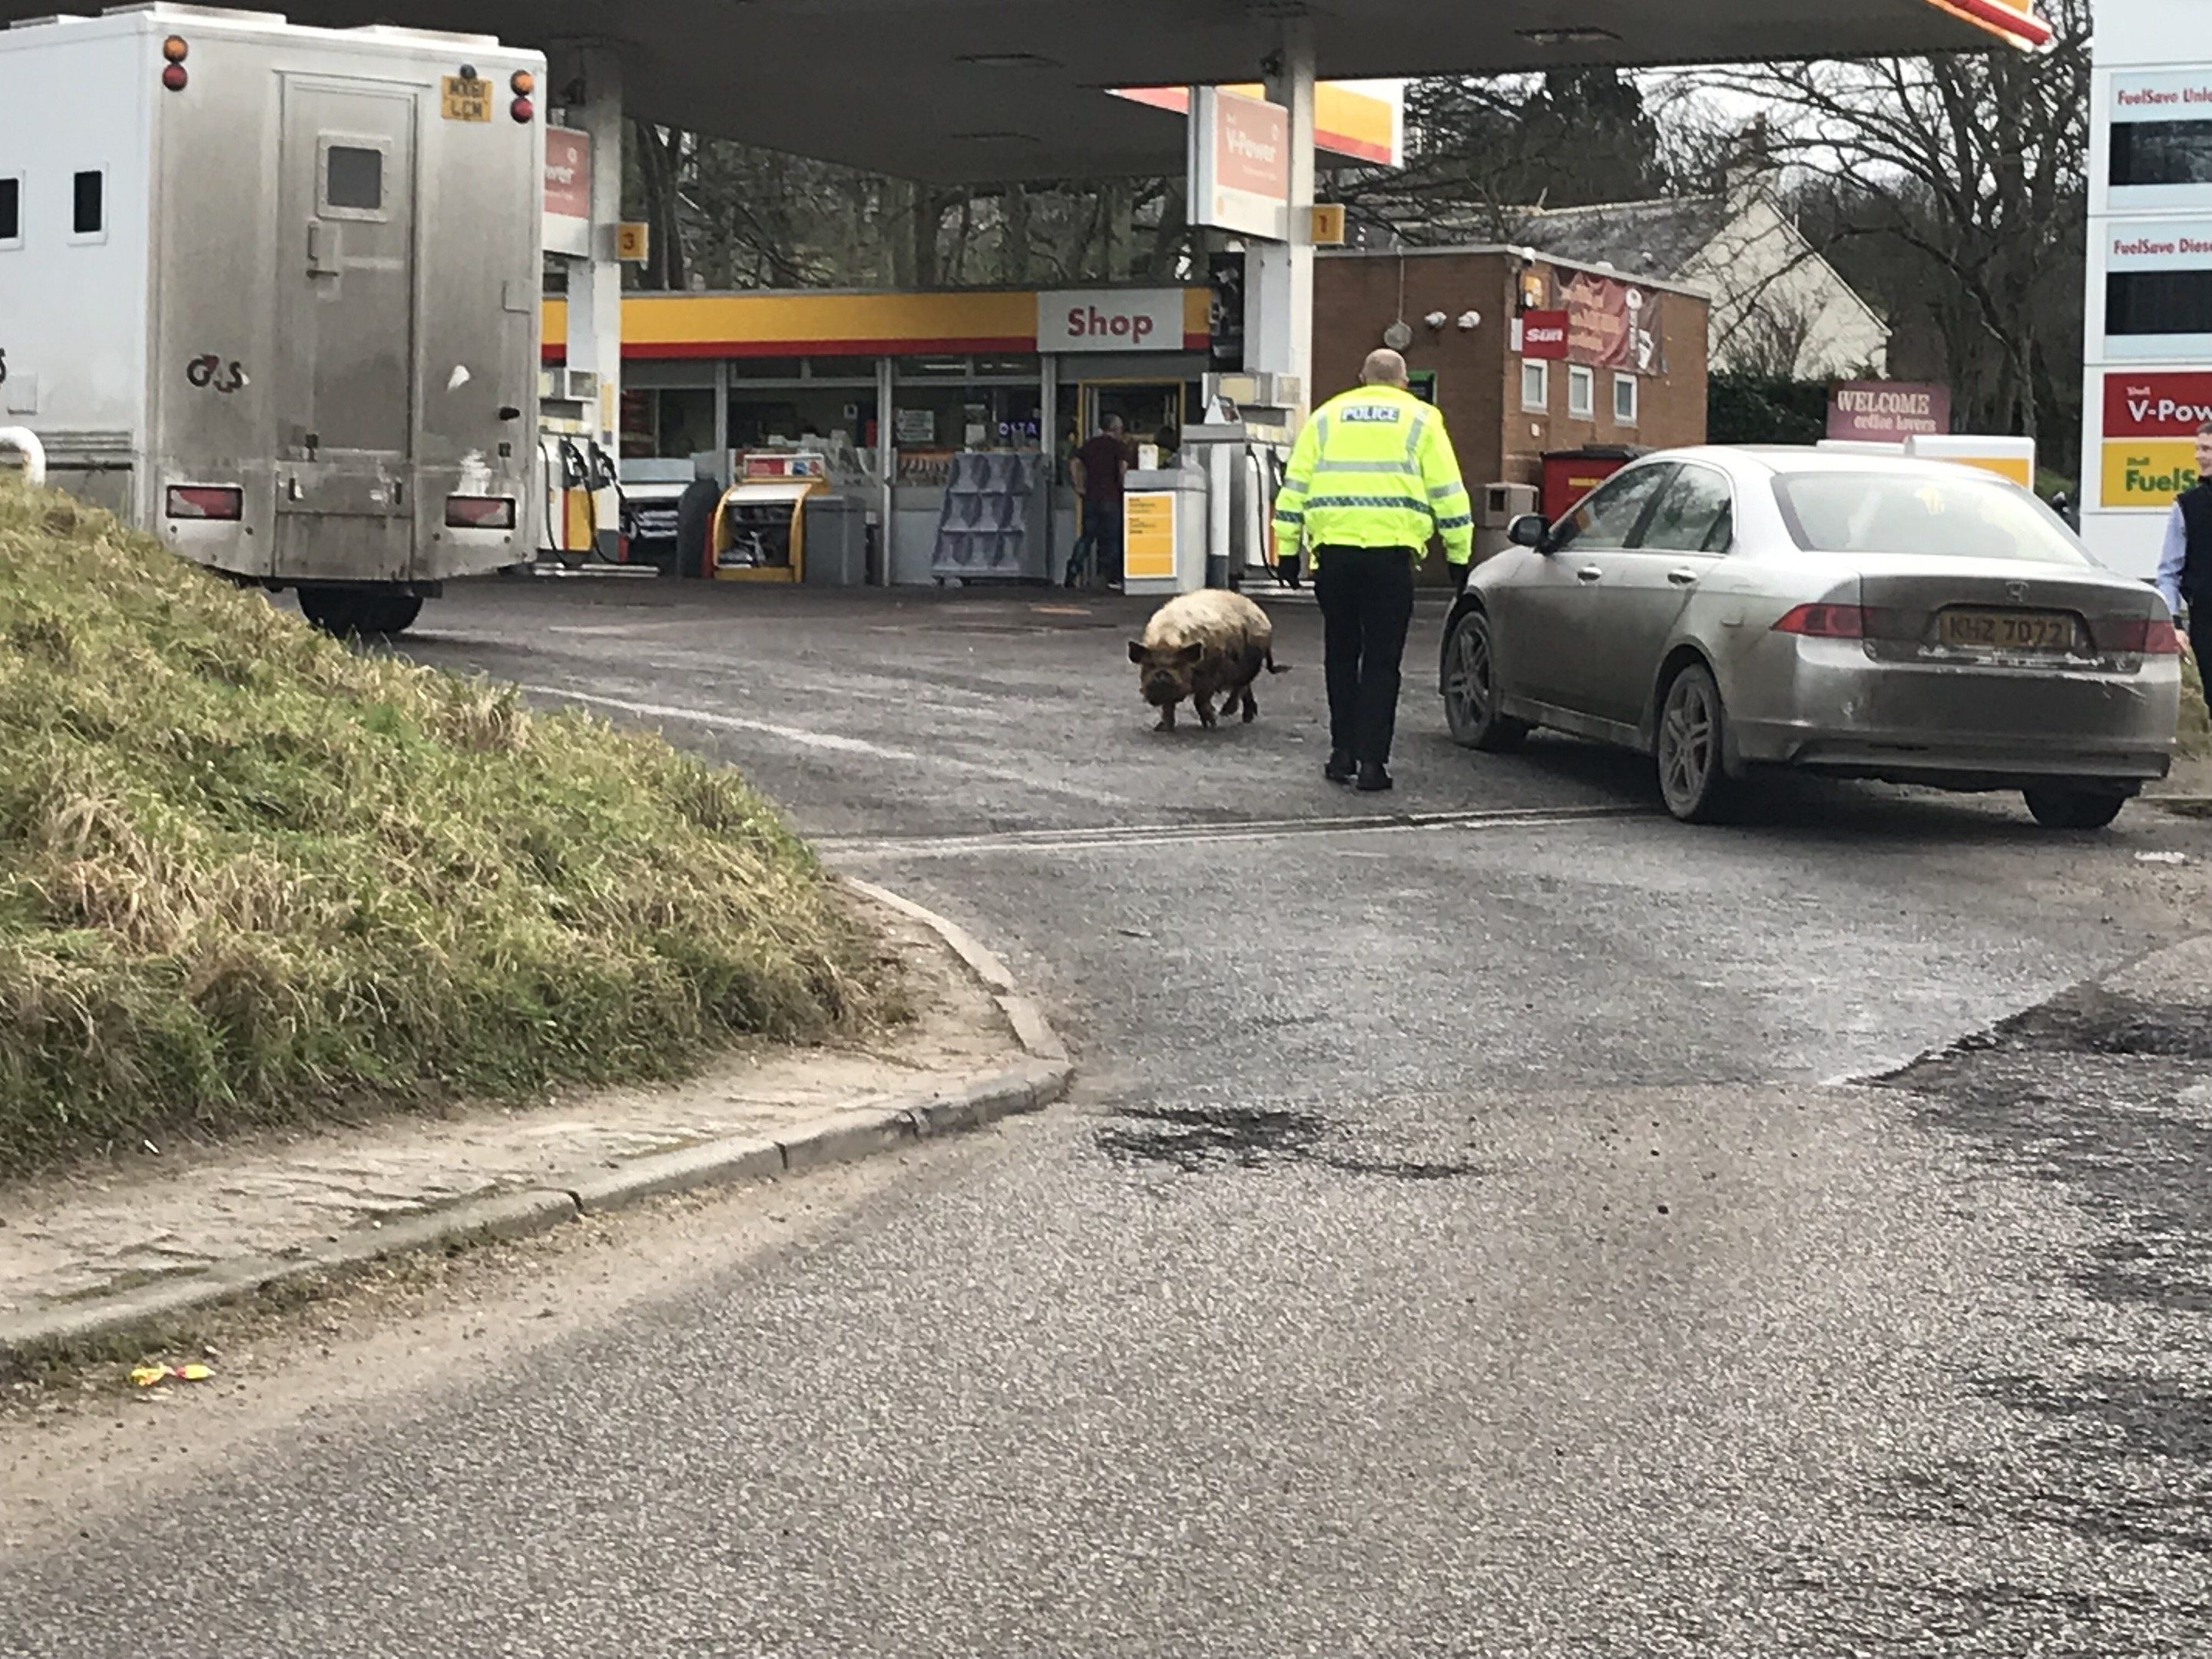 The pig was caught at a petrol station.